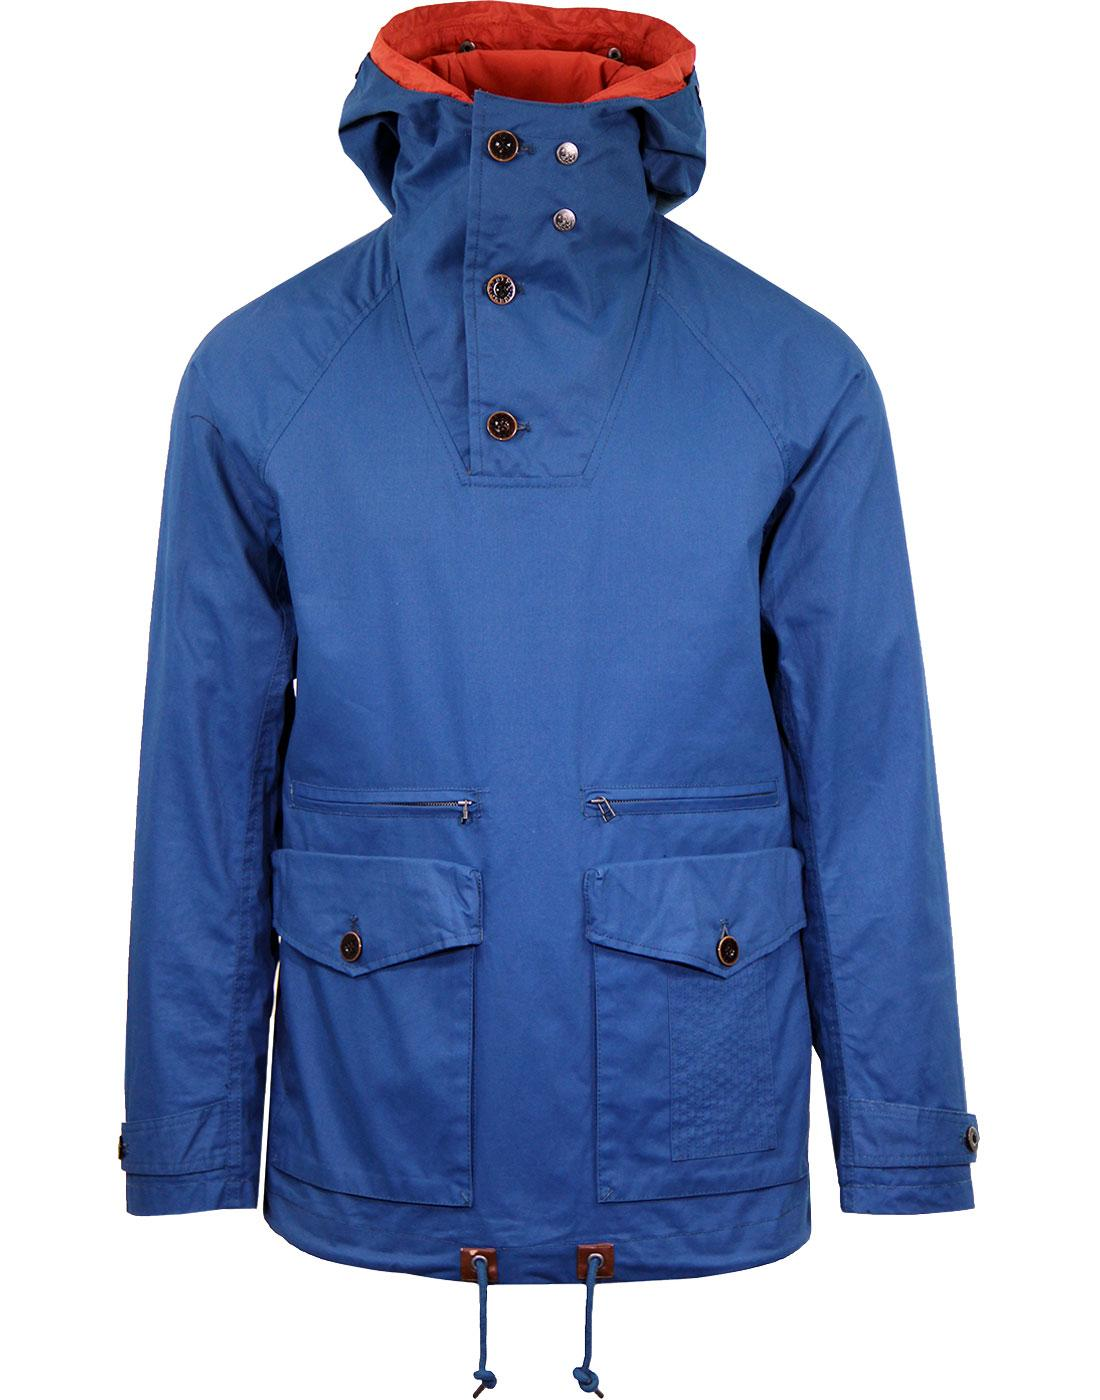 PRETTY GREEN Mens Retro Overhead Cagoule Jacket BL